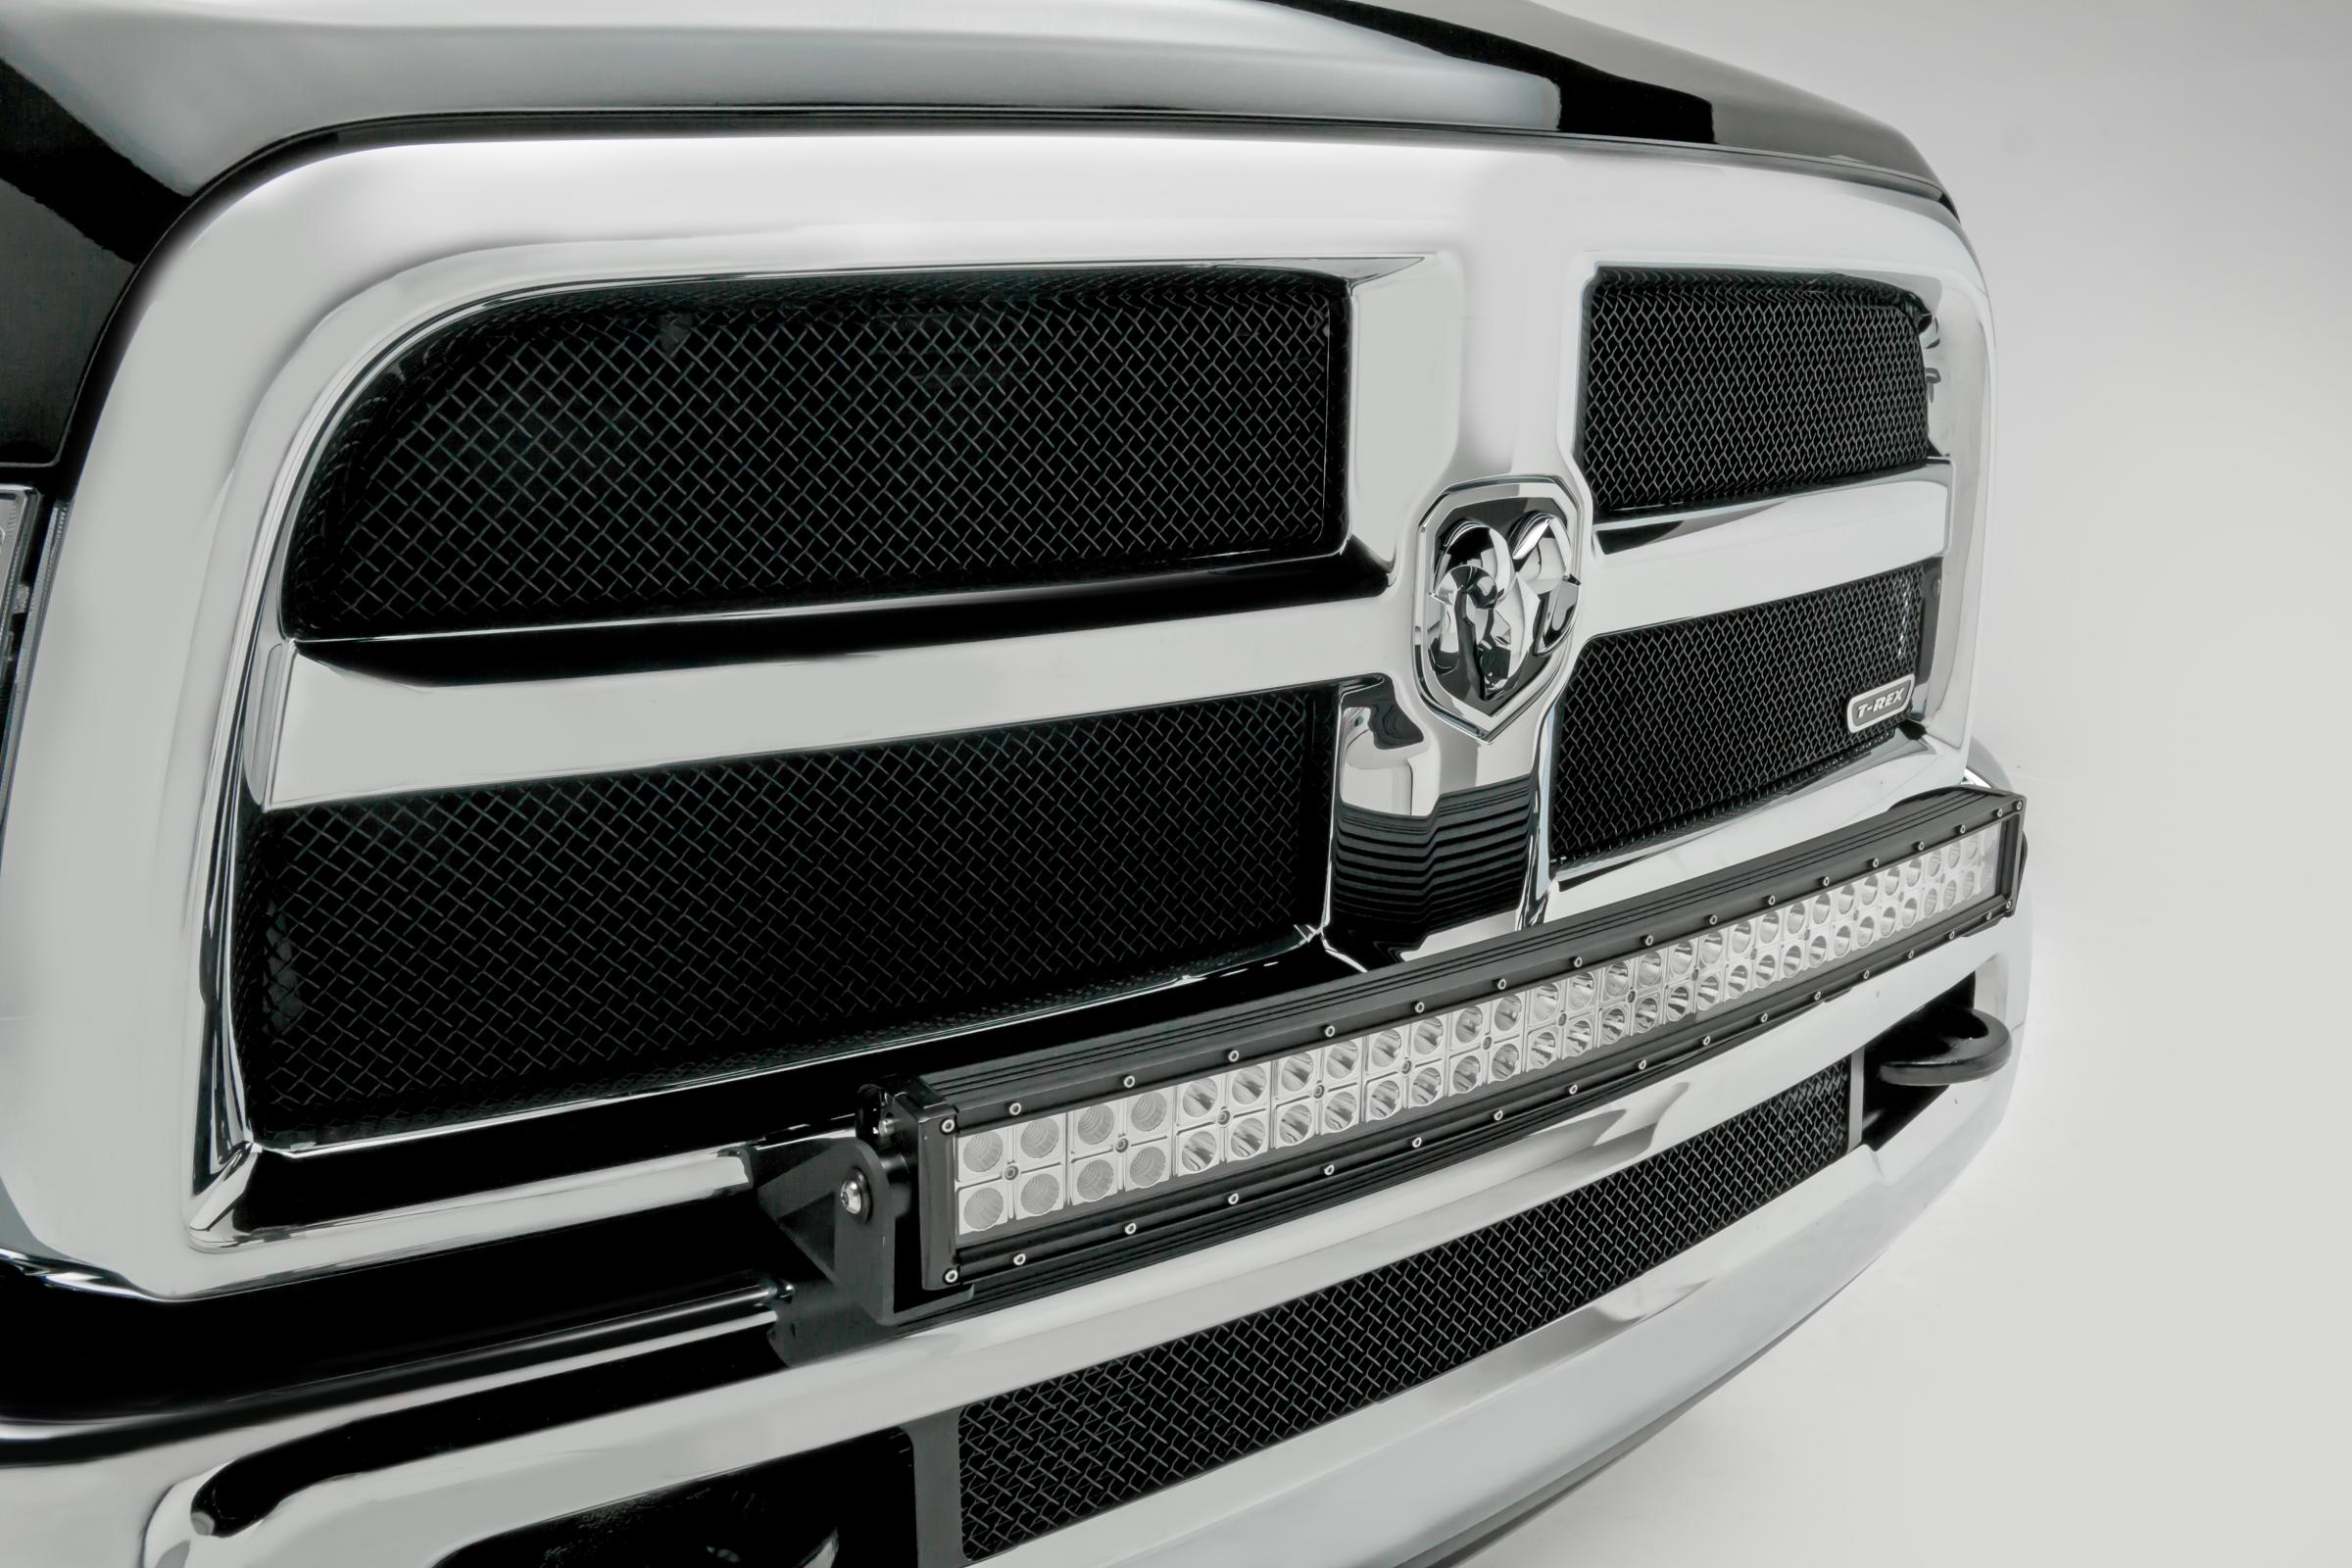 Front Bumper Top Led Light Bar Mount Kit 10 18 Dodge Ram 2500 3500 W Nitro Tow Wiring View The Full Image